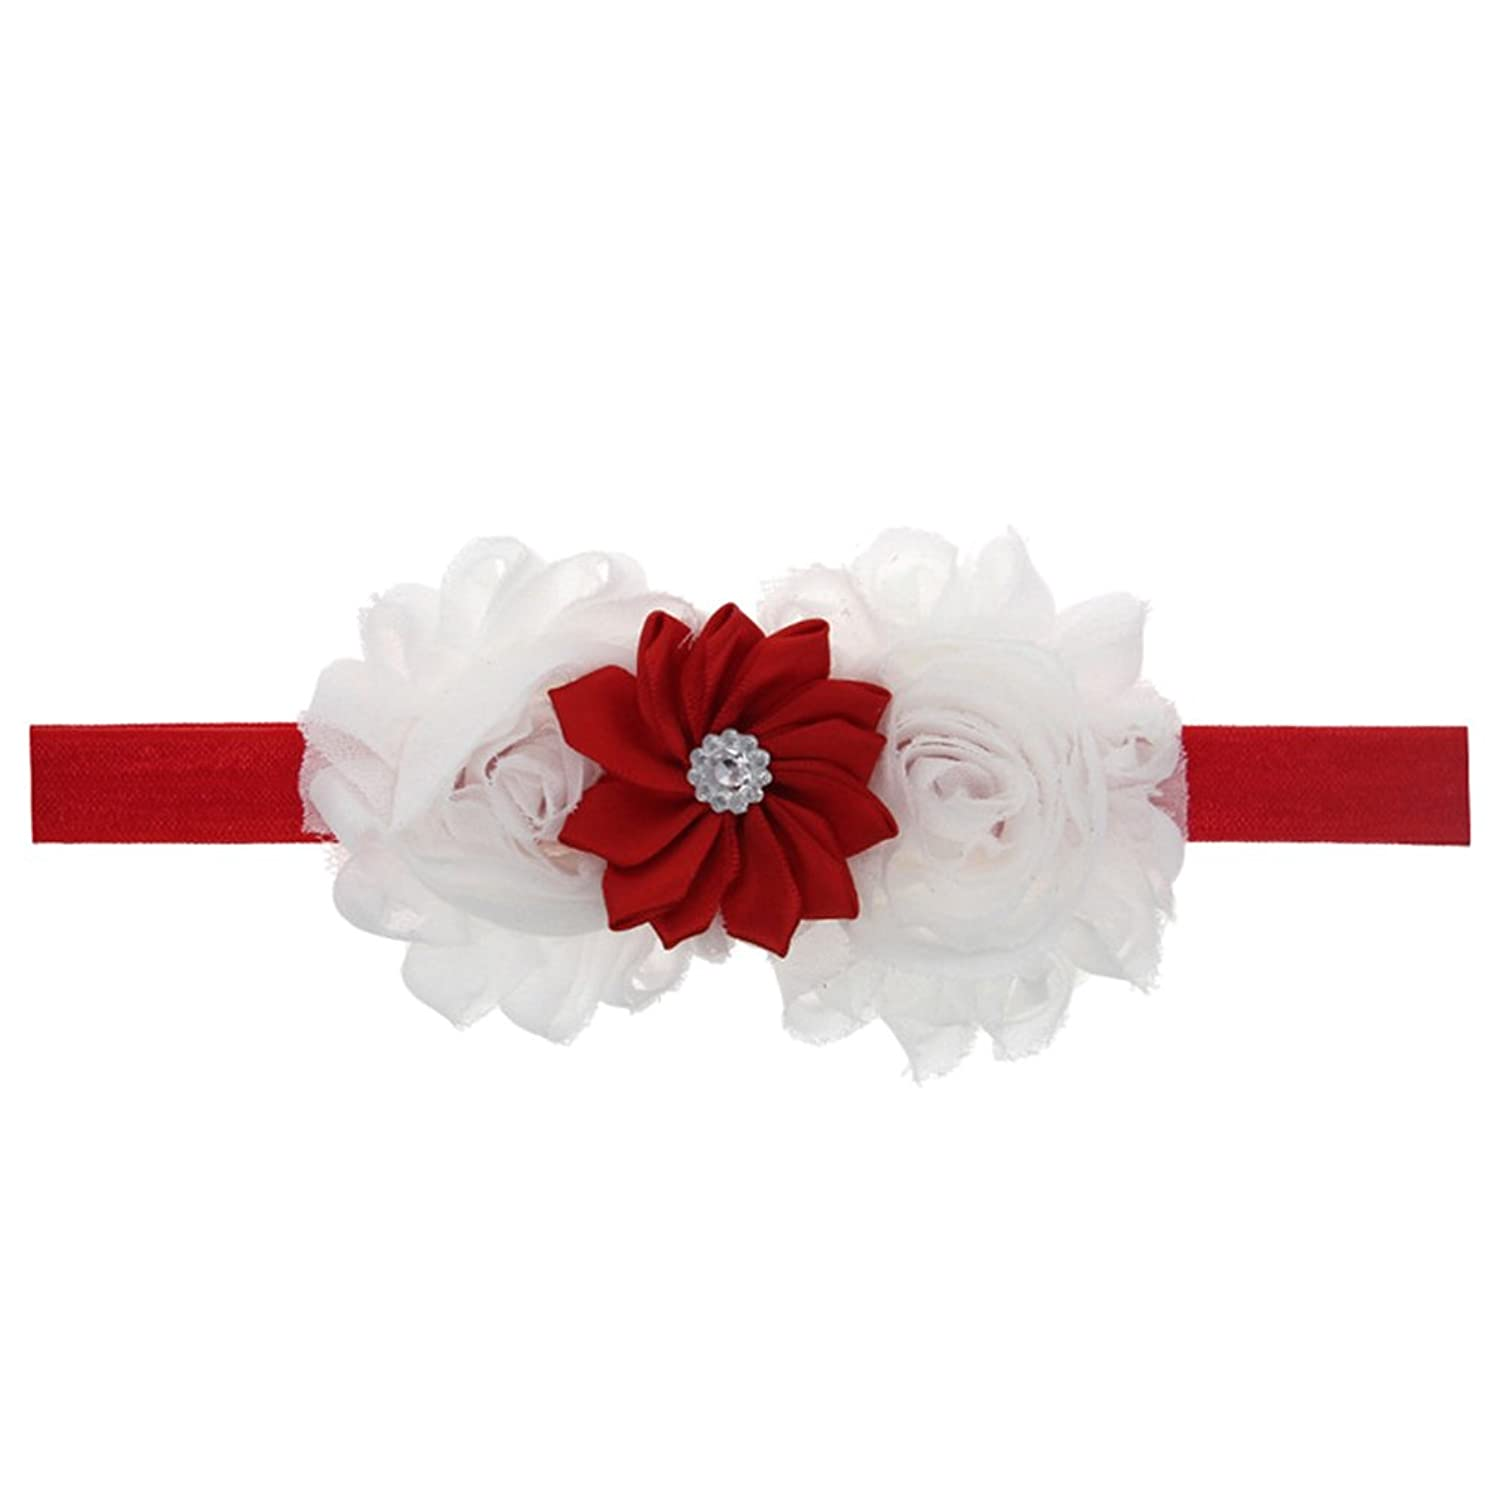 Zhhlaixing Kids Baby Girls Toddler Soft Elastic Flowers Headband Hairband Hair Accessories for Christmas/Photography Pops/Costume/Party 5130